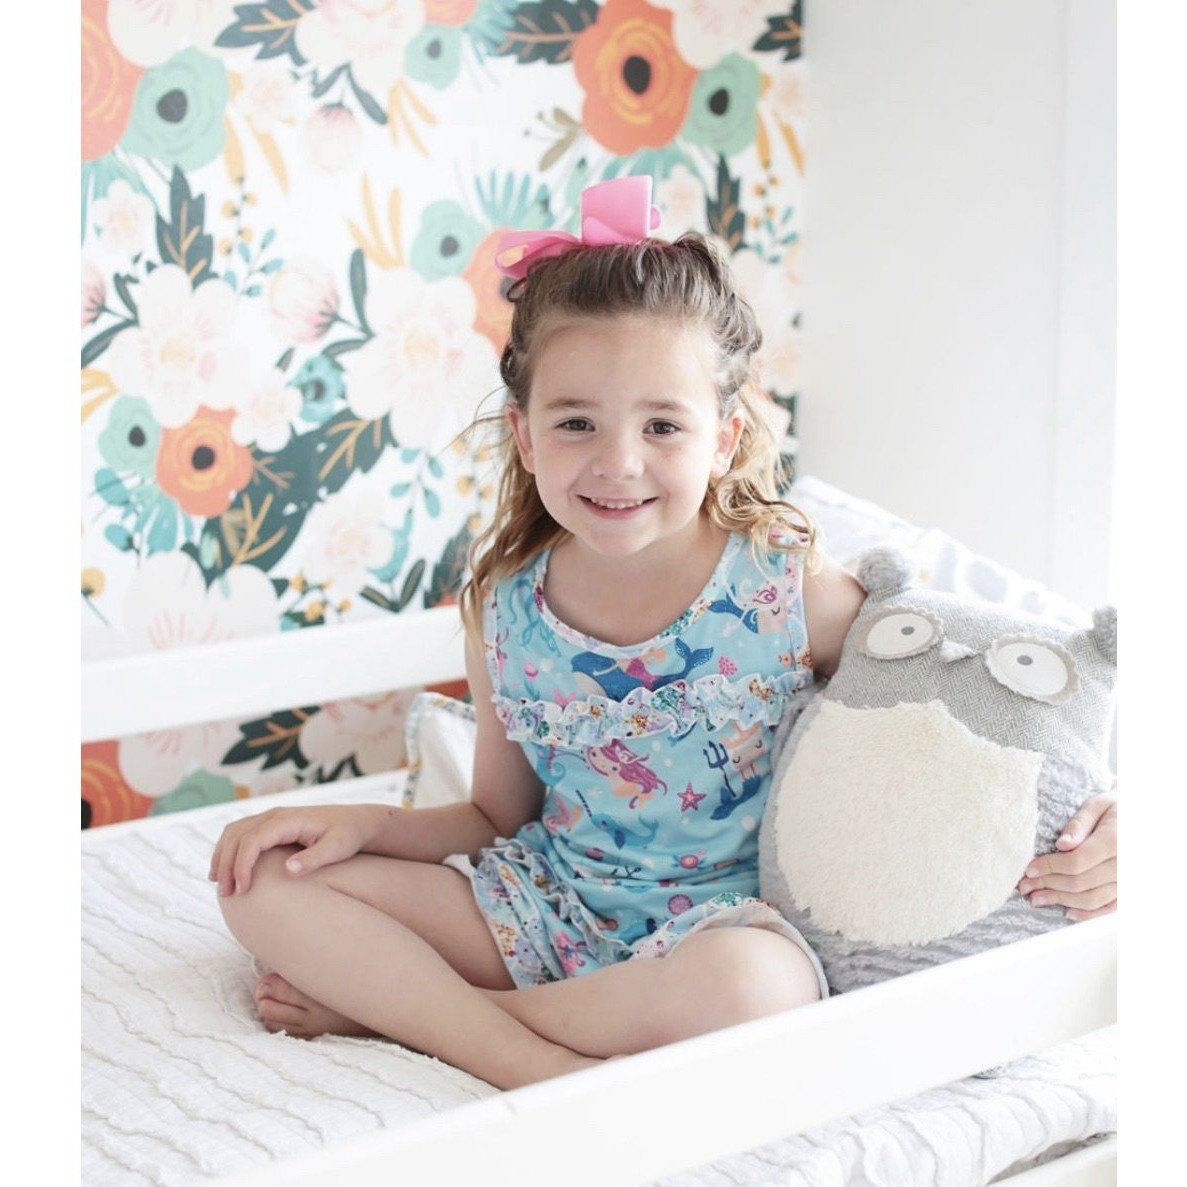 Adorable Essentials, Under the Sea Dream Lounge Wear Set,,Adorable Essentials, LLC